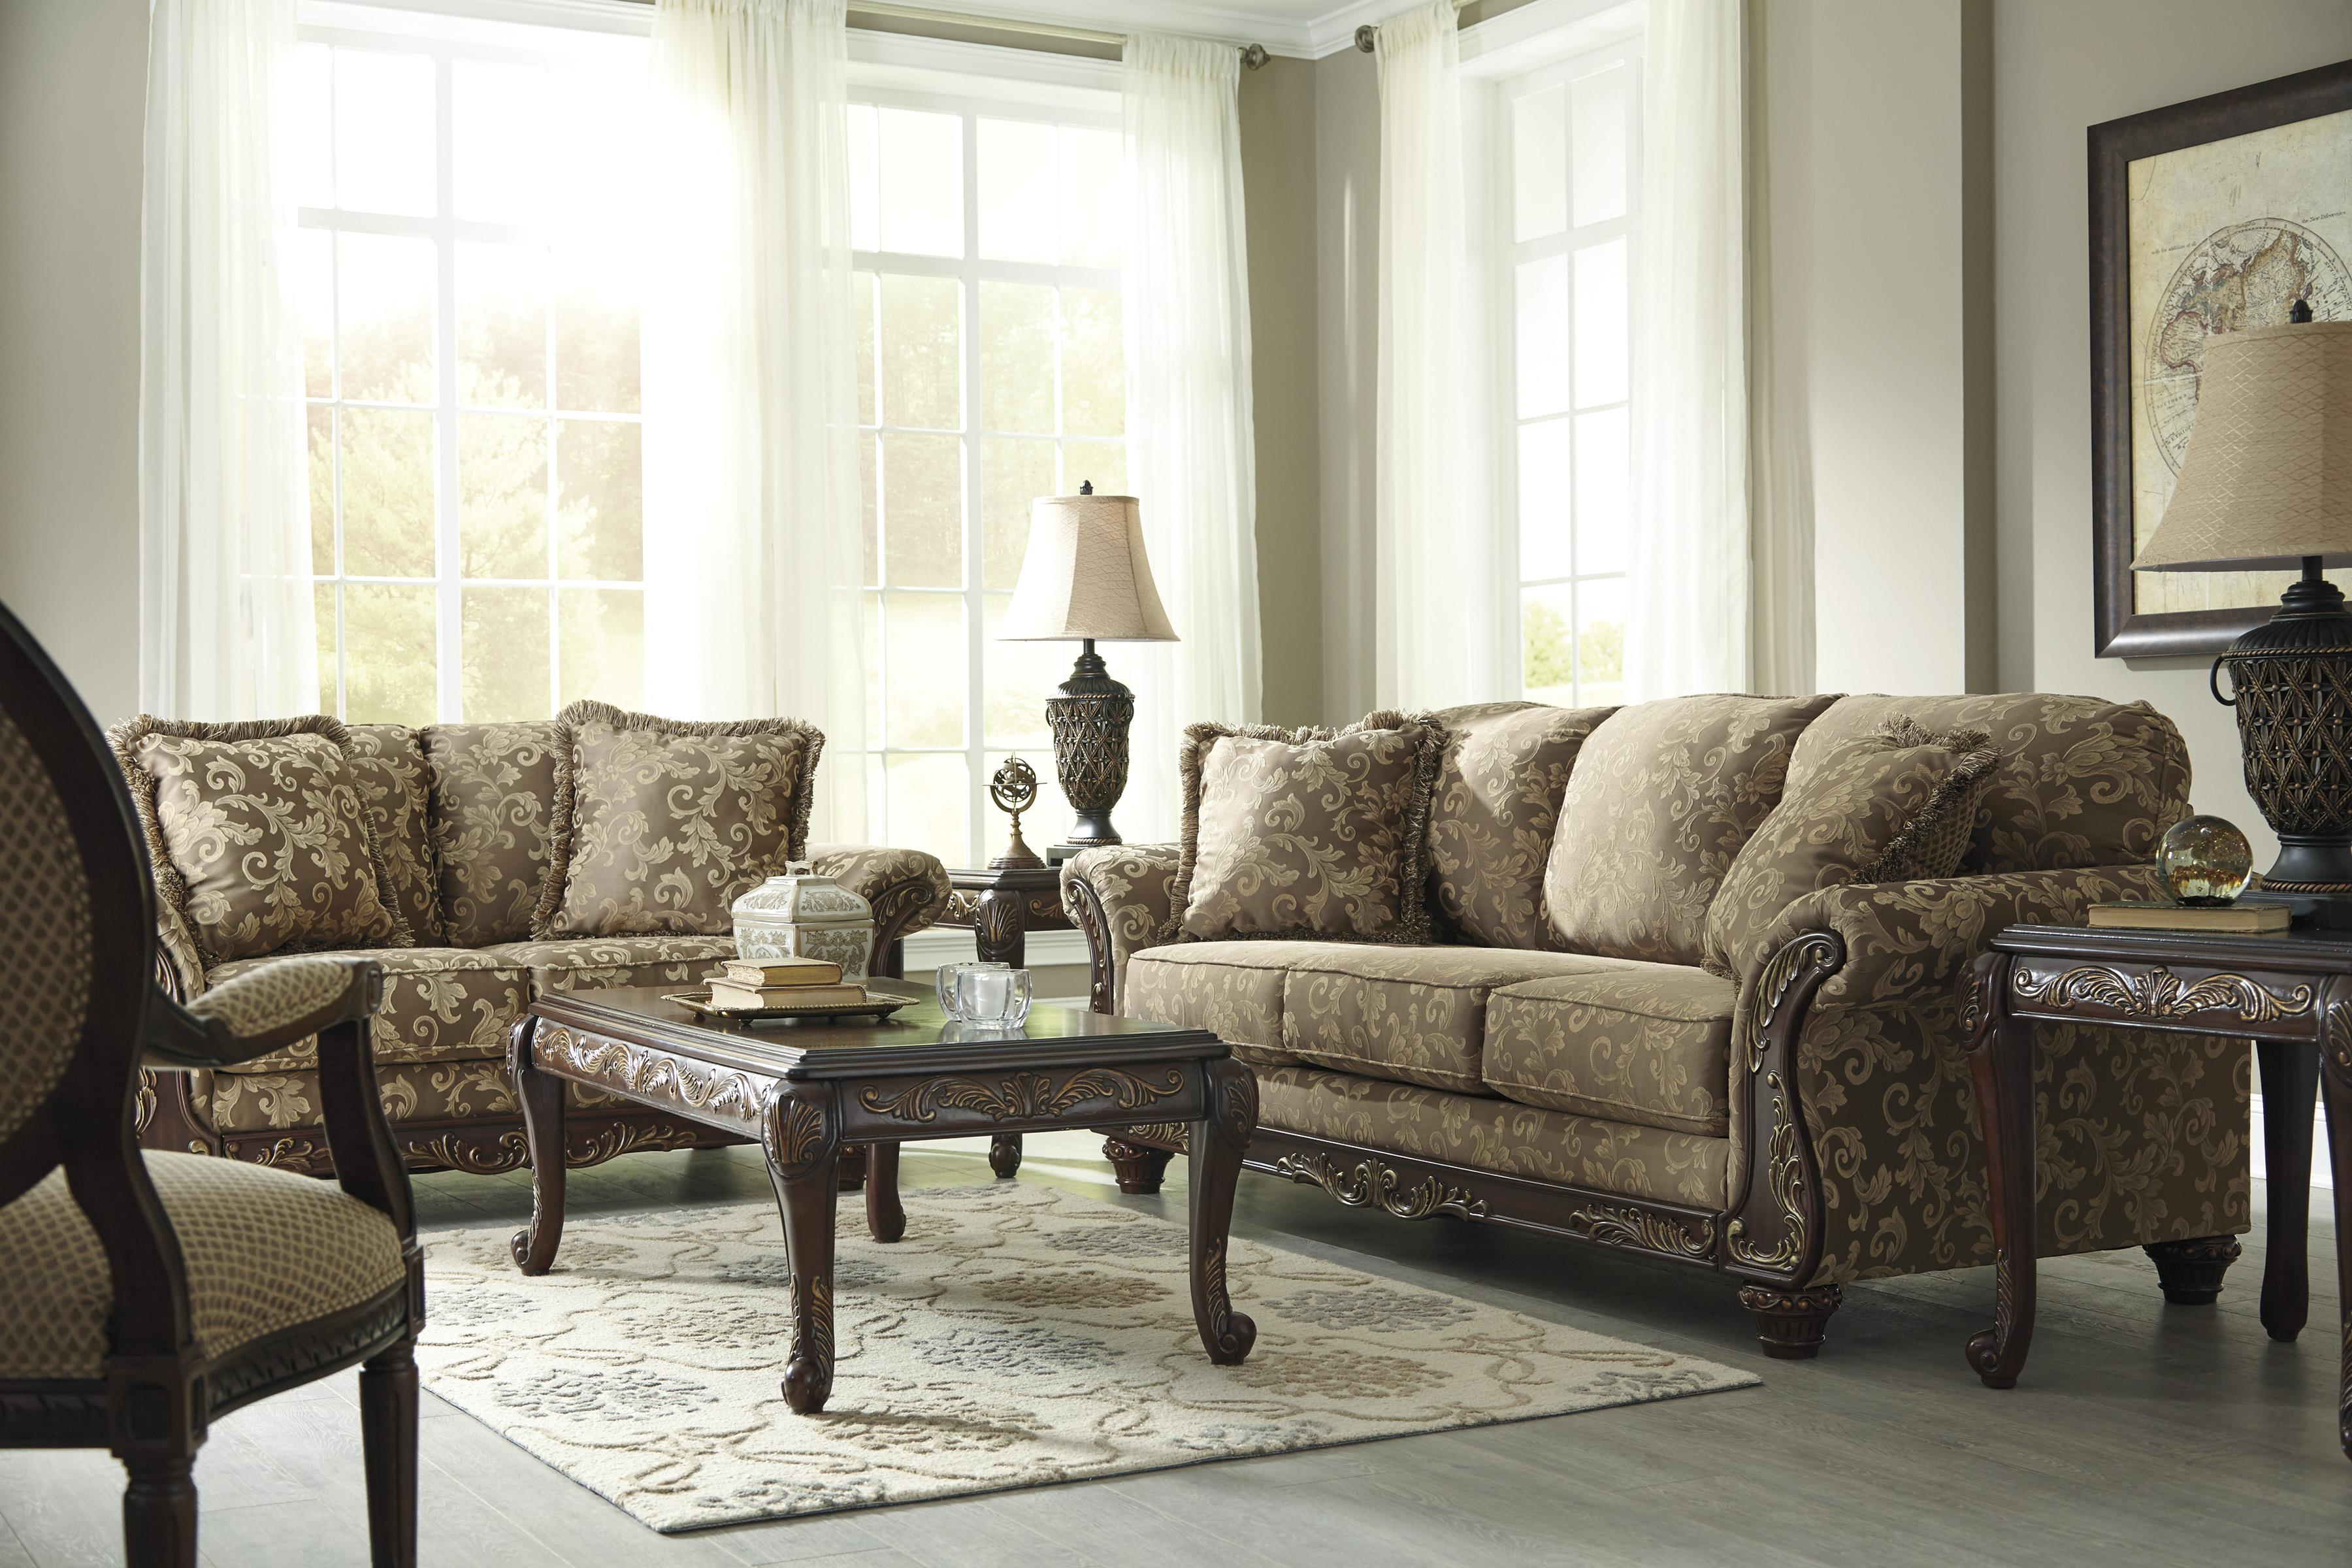 Signature Design by Ashley Irwindale Stationary Living Room Group - Item Number: 88404 Living Room Group 2